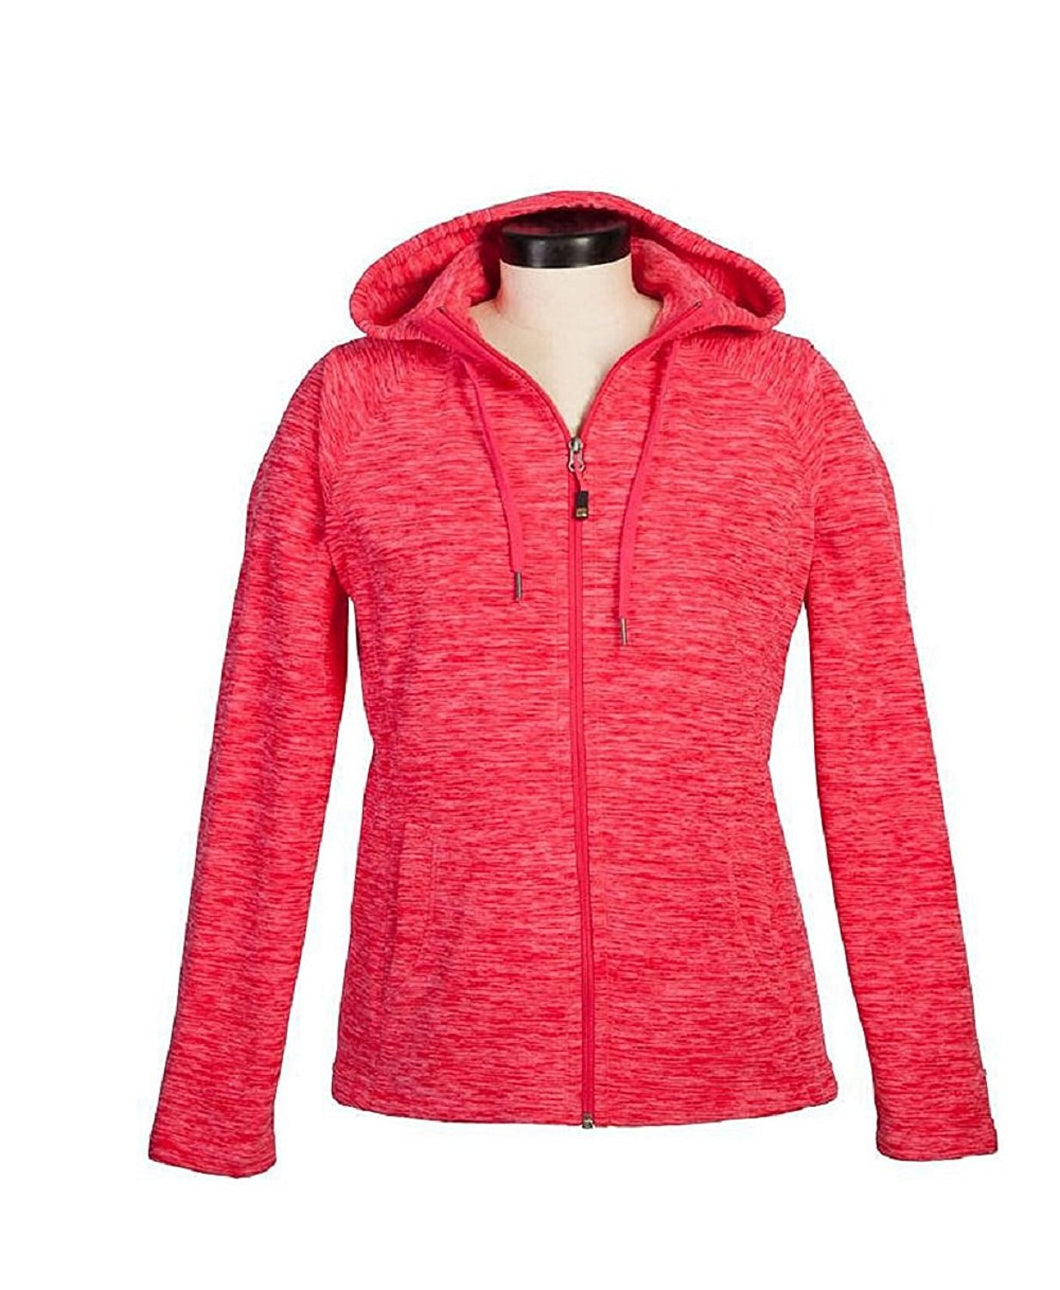 Green Tea Women's Size Small Long Sleeve Full Zip Hoodie Sweat Shirt, Coral Red